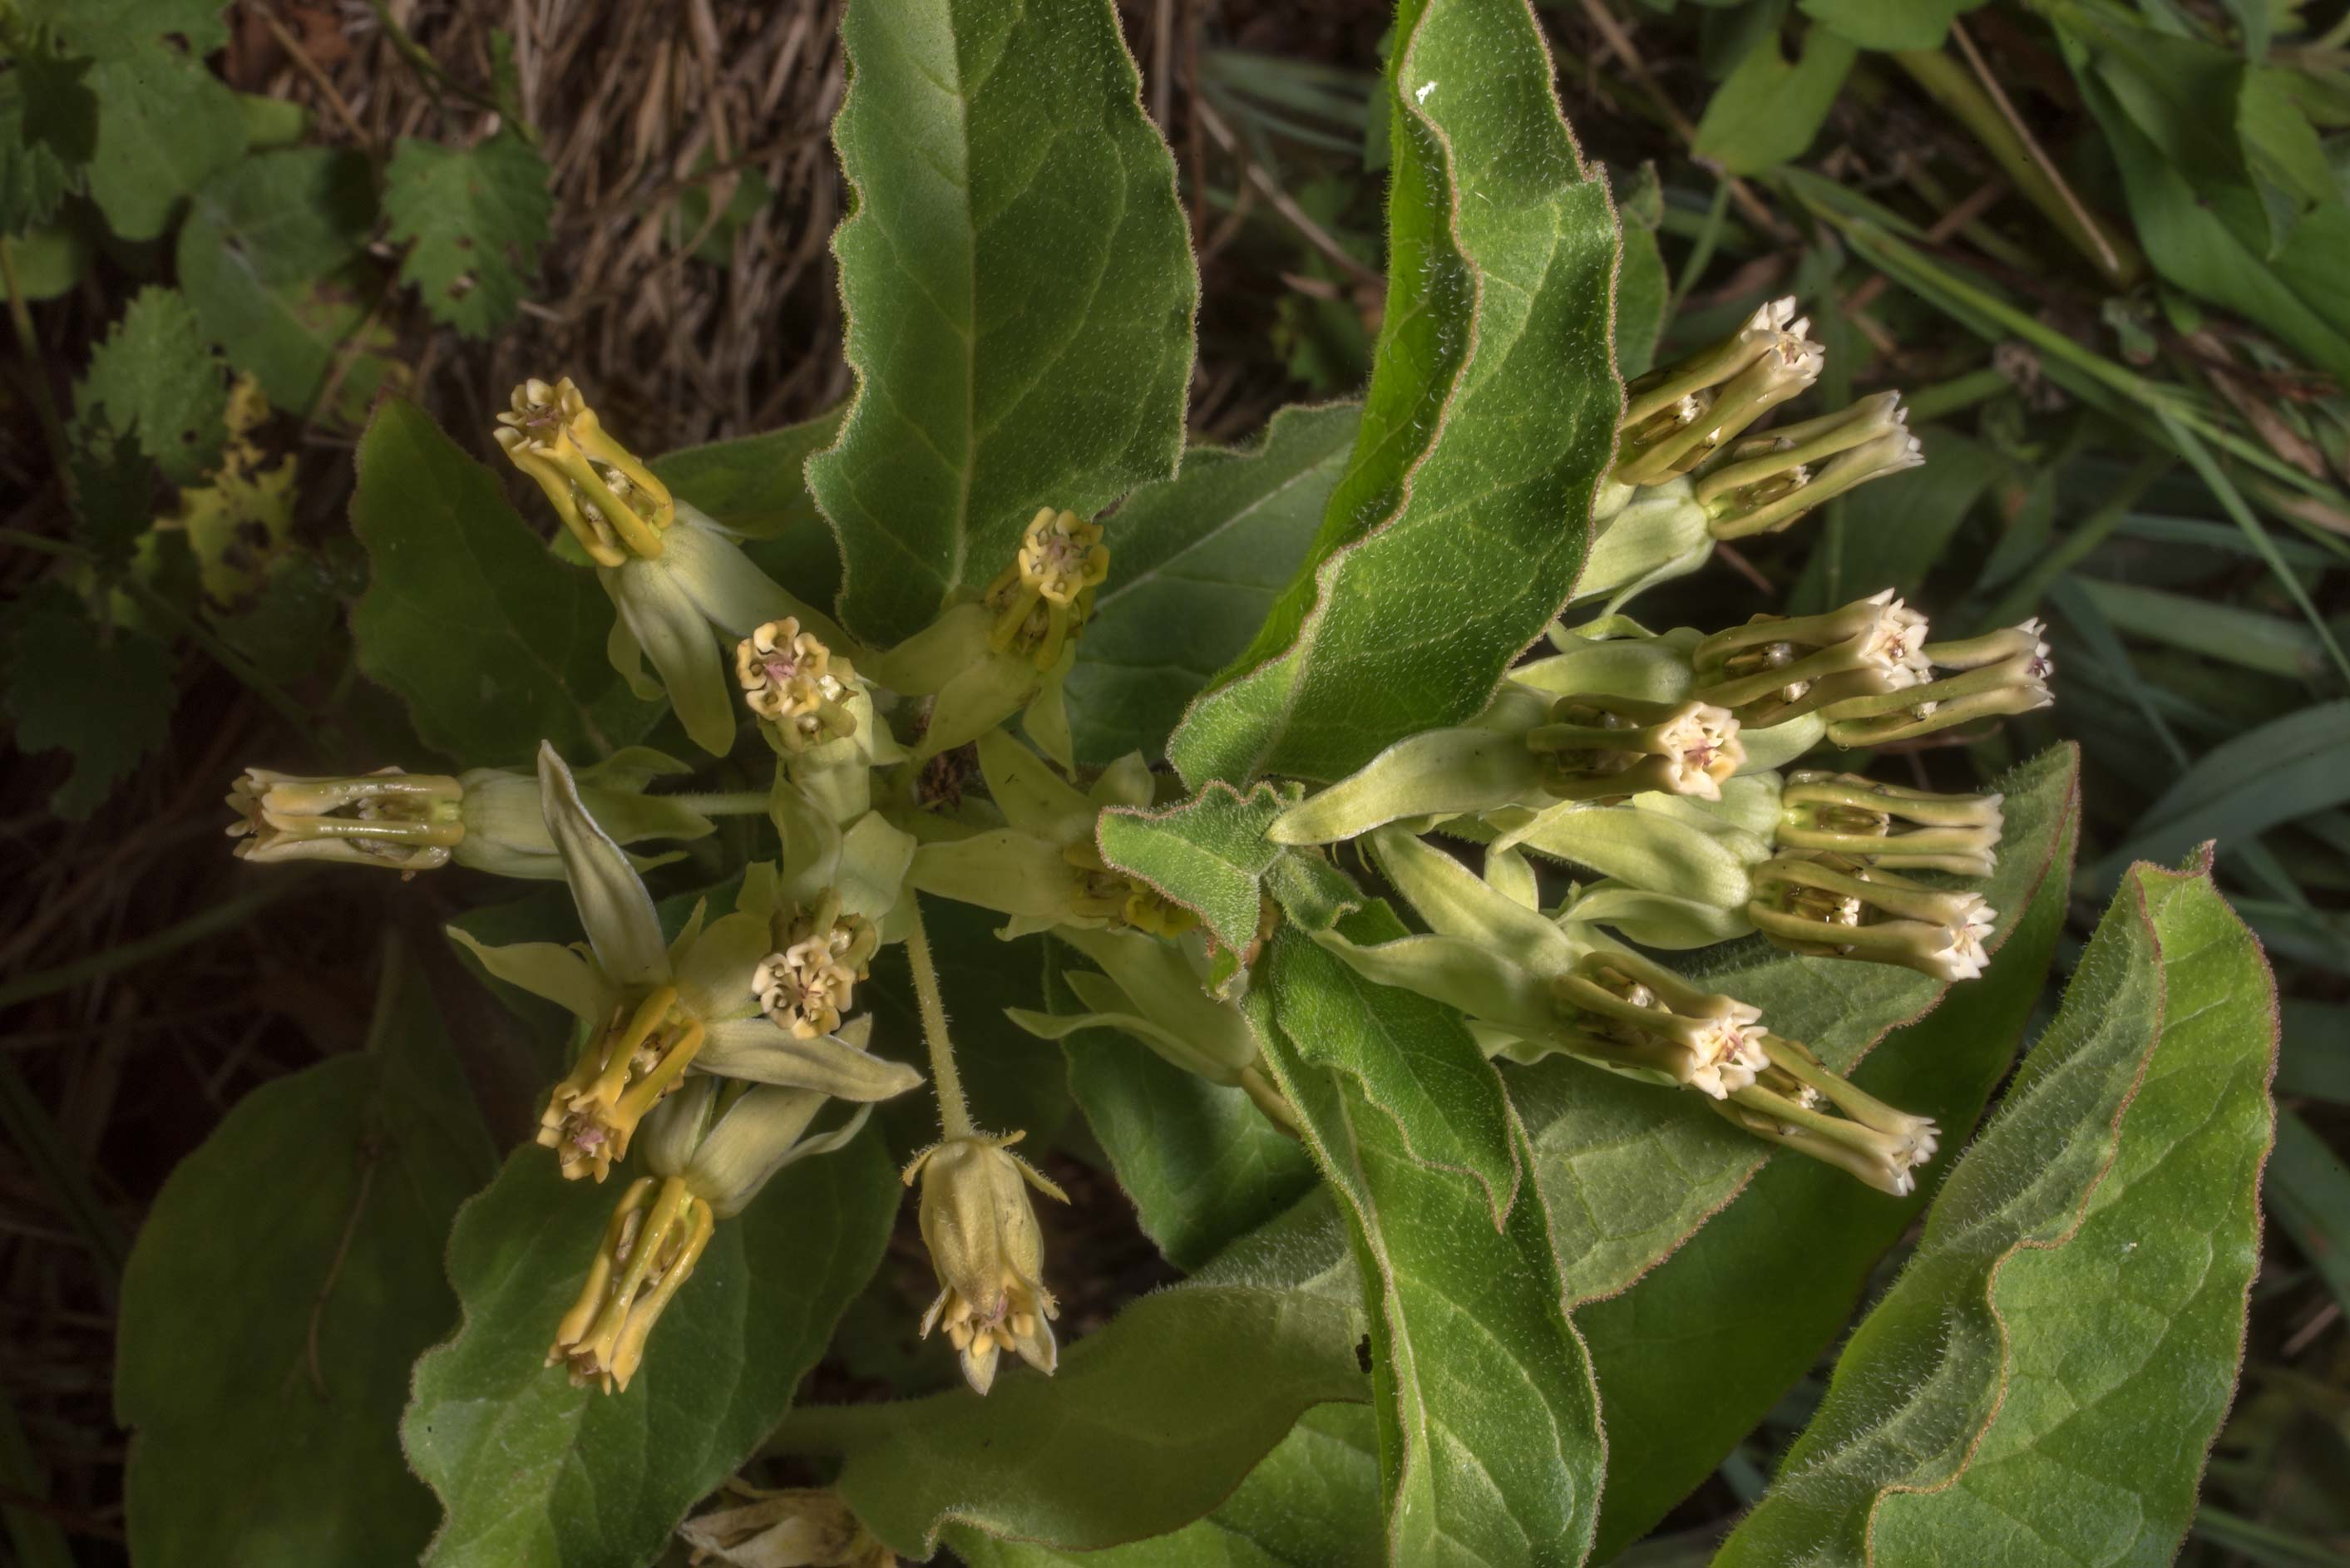 Flowers of Zizotes milkweed (Hierba de Zizotes...State Historic Site. Washington, Texas